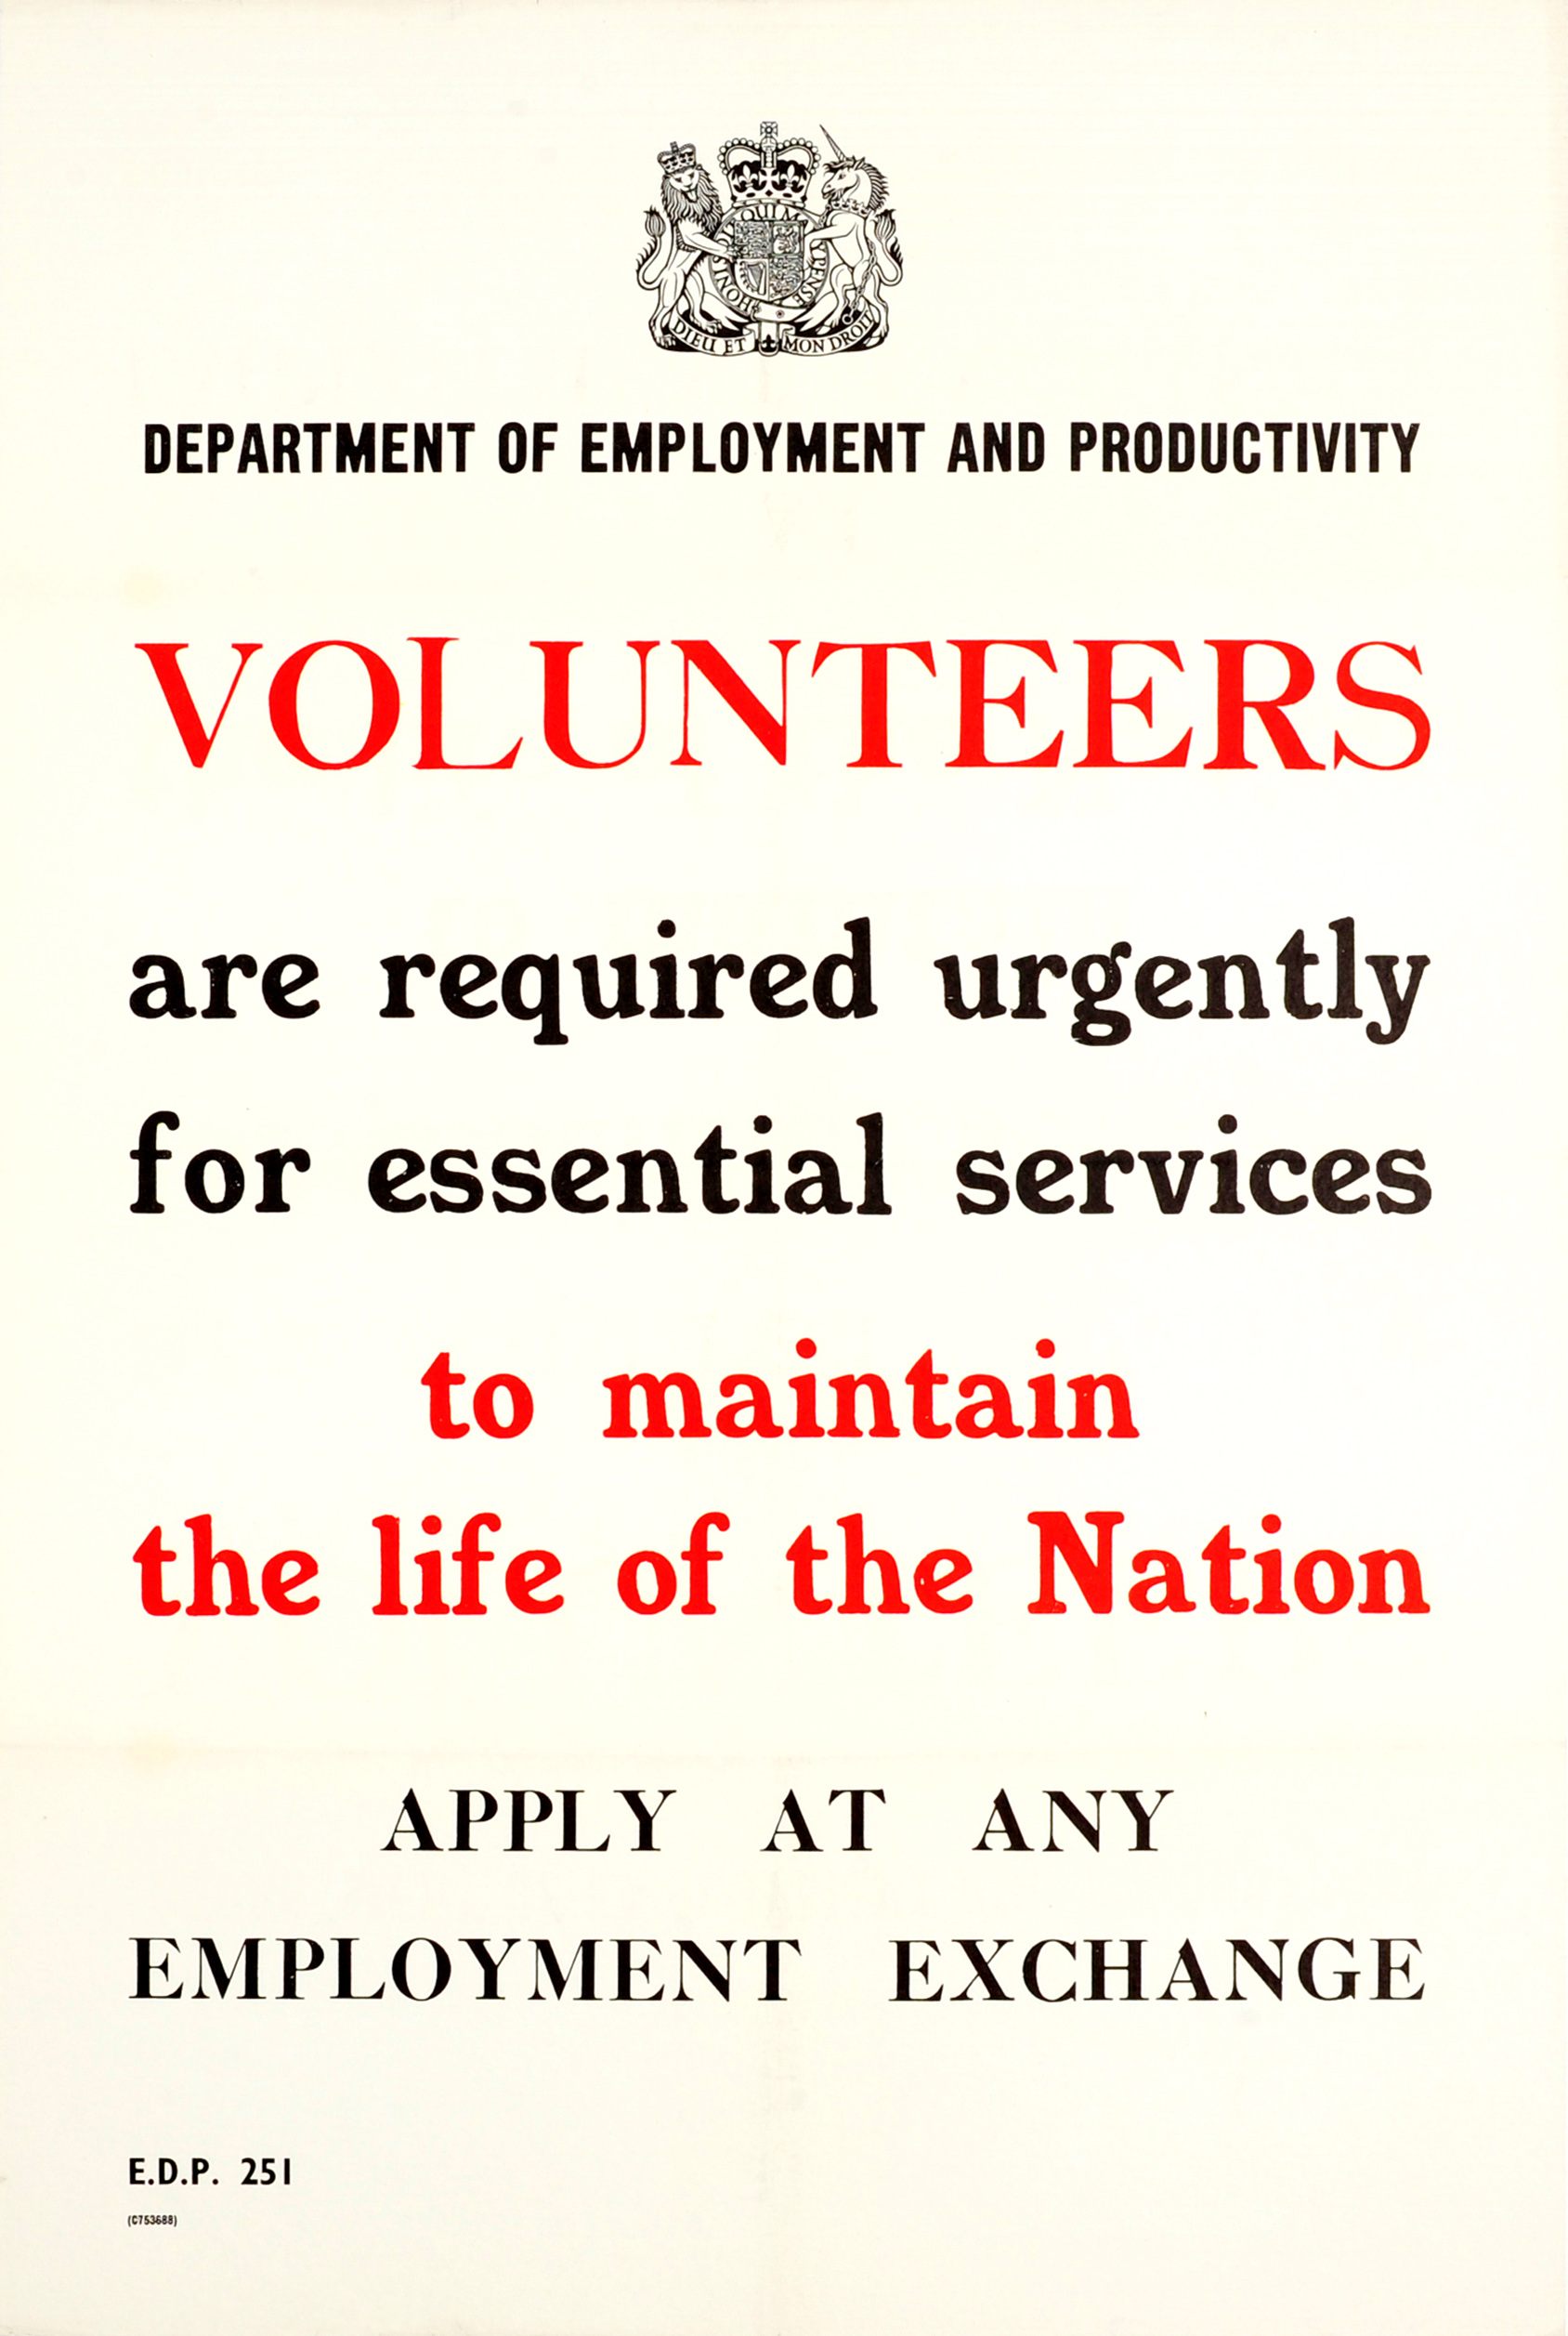 Lot 20 - War Poster Volunteers Required Urgently WWII UK